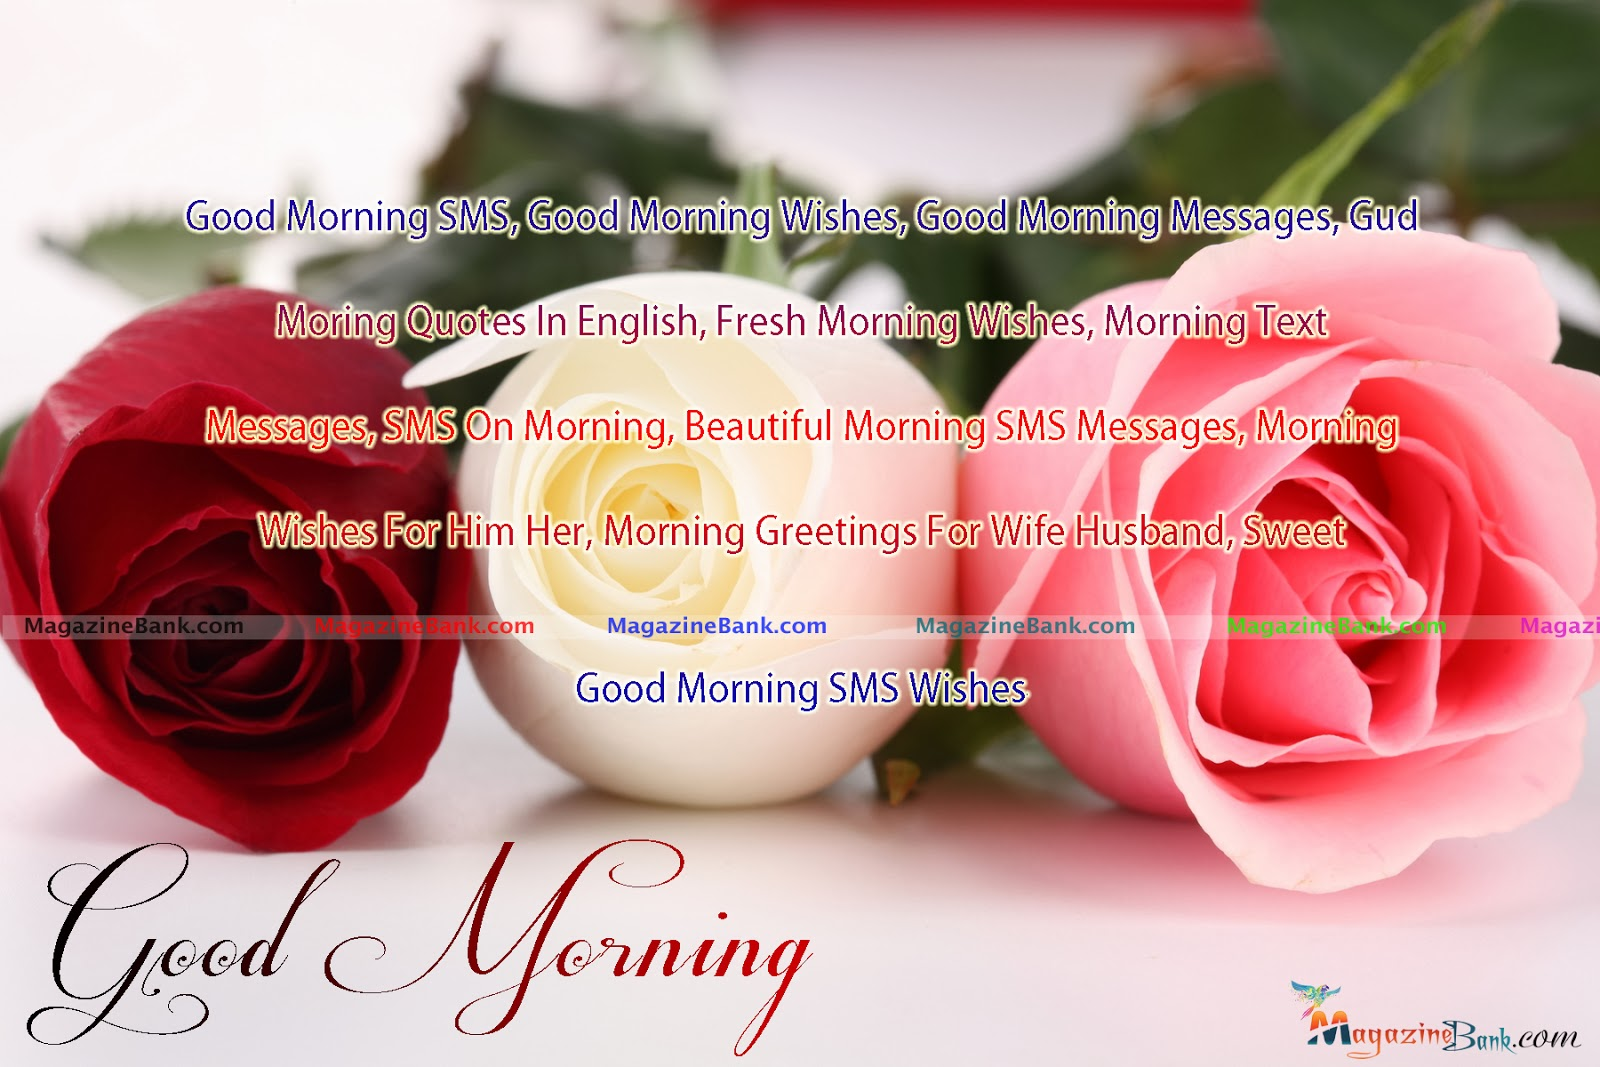 Good Morning My Friend Quotes: Good Morning Beautiful Text Quotes. QuotesGram